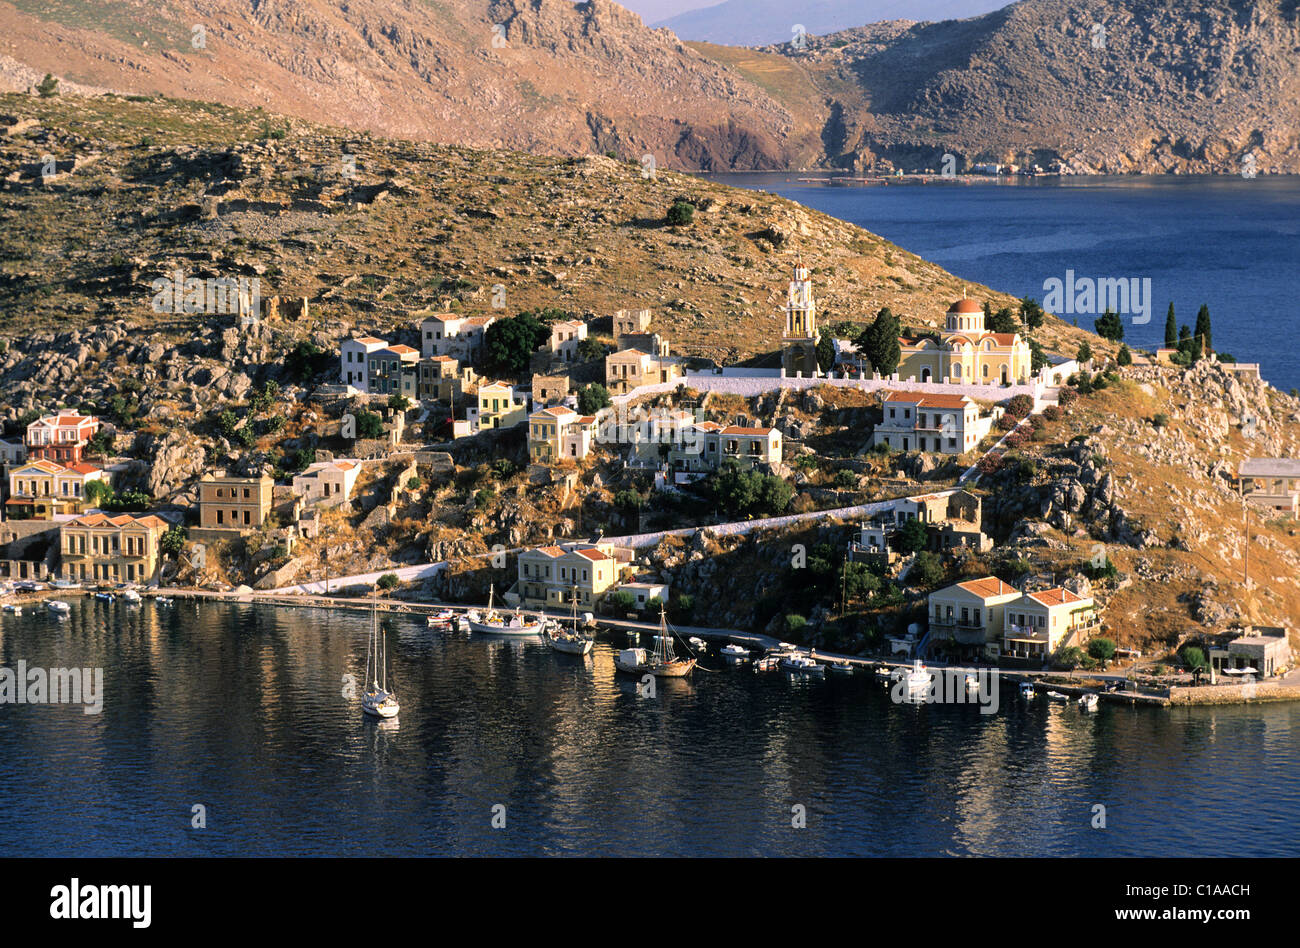 Greece, the Dodecanese, Symi Island, Nos in the surroundings of the port of Gialos - Stock Image